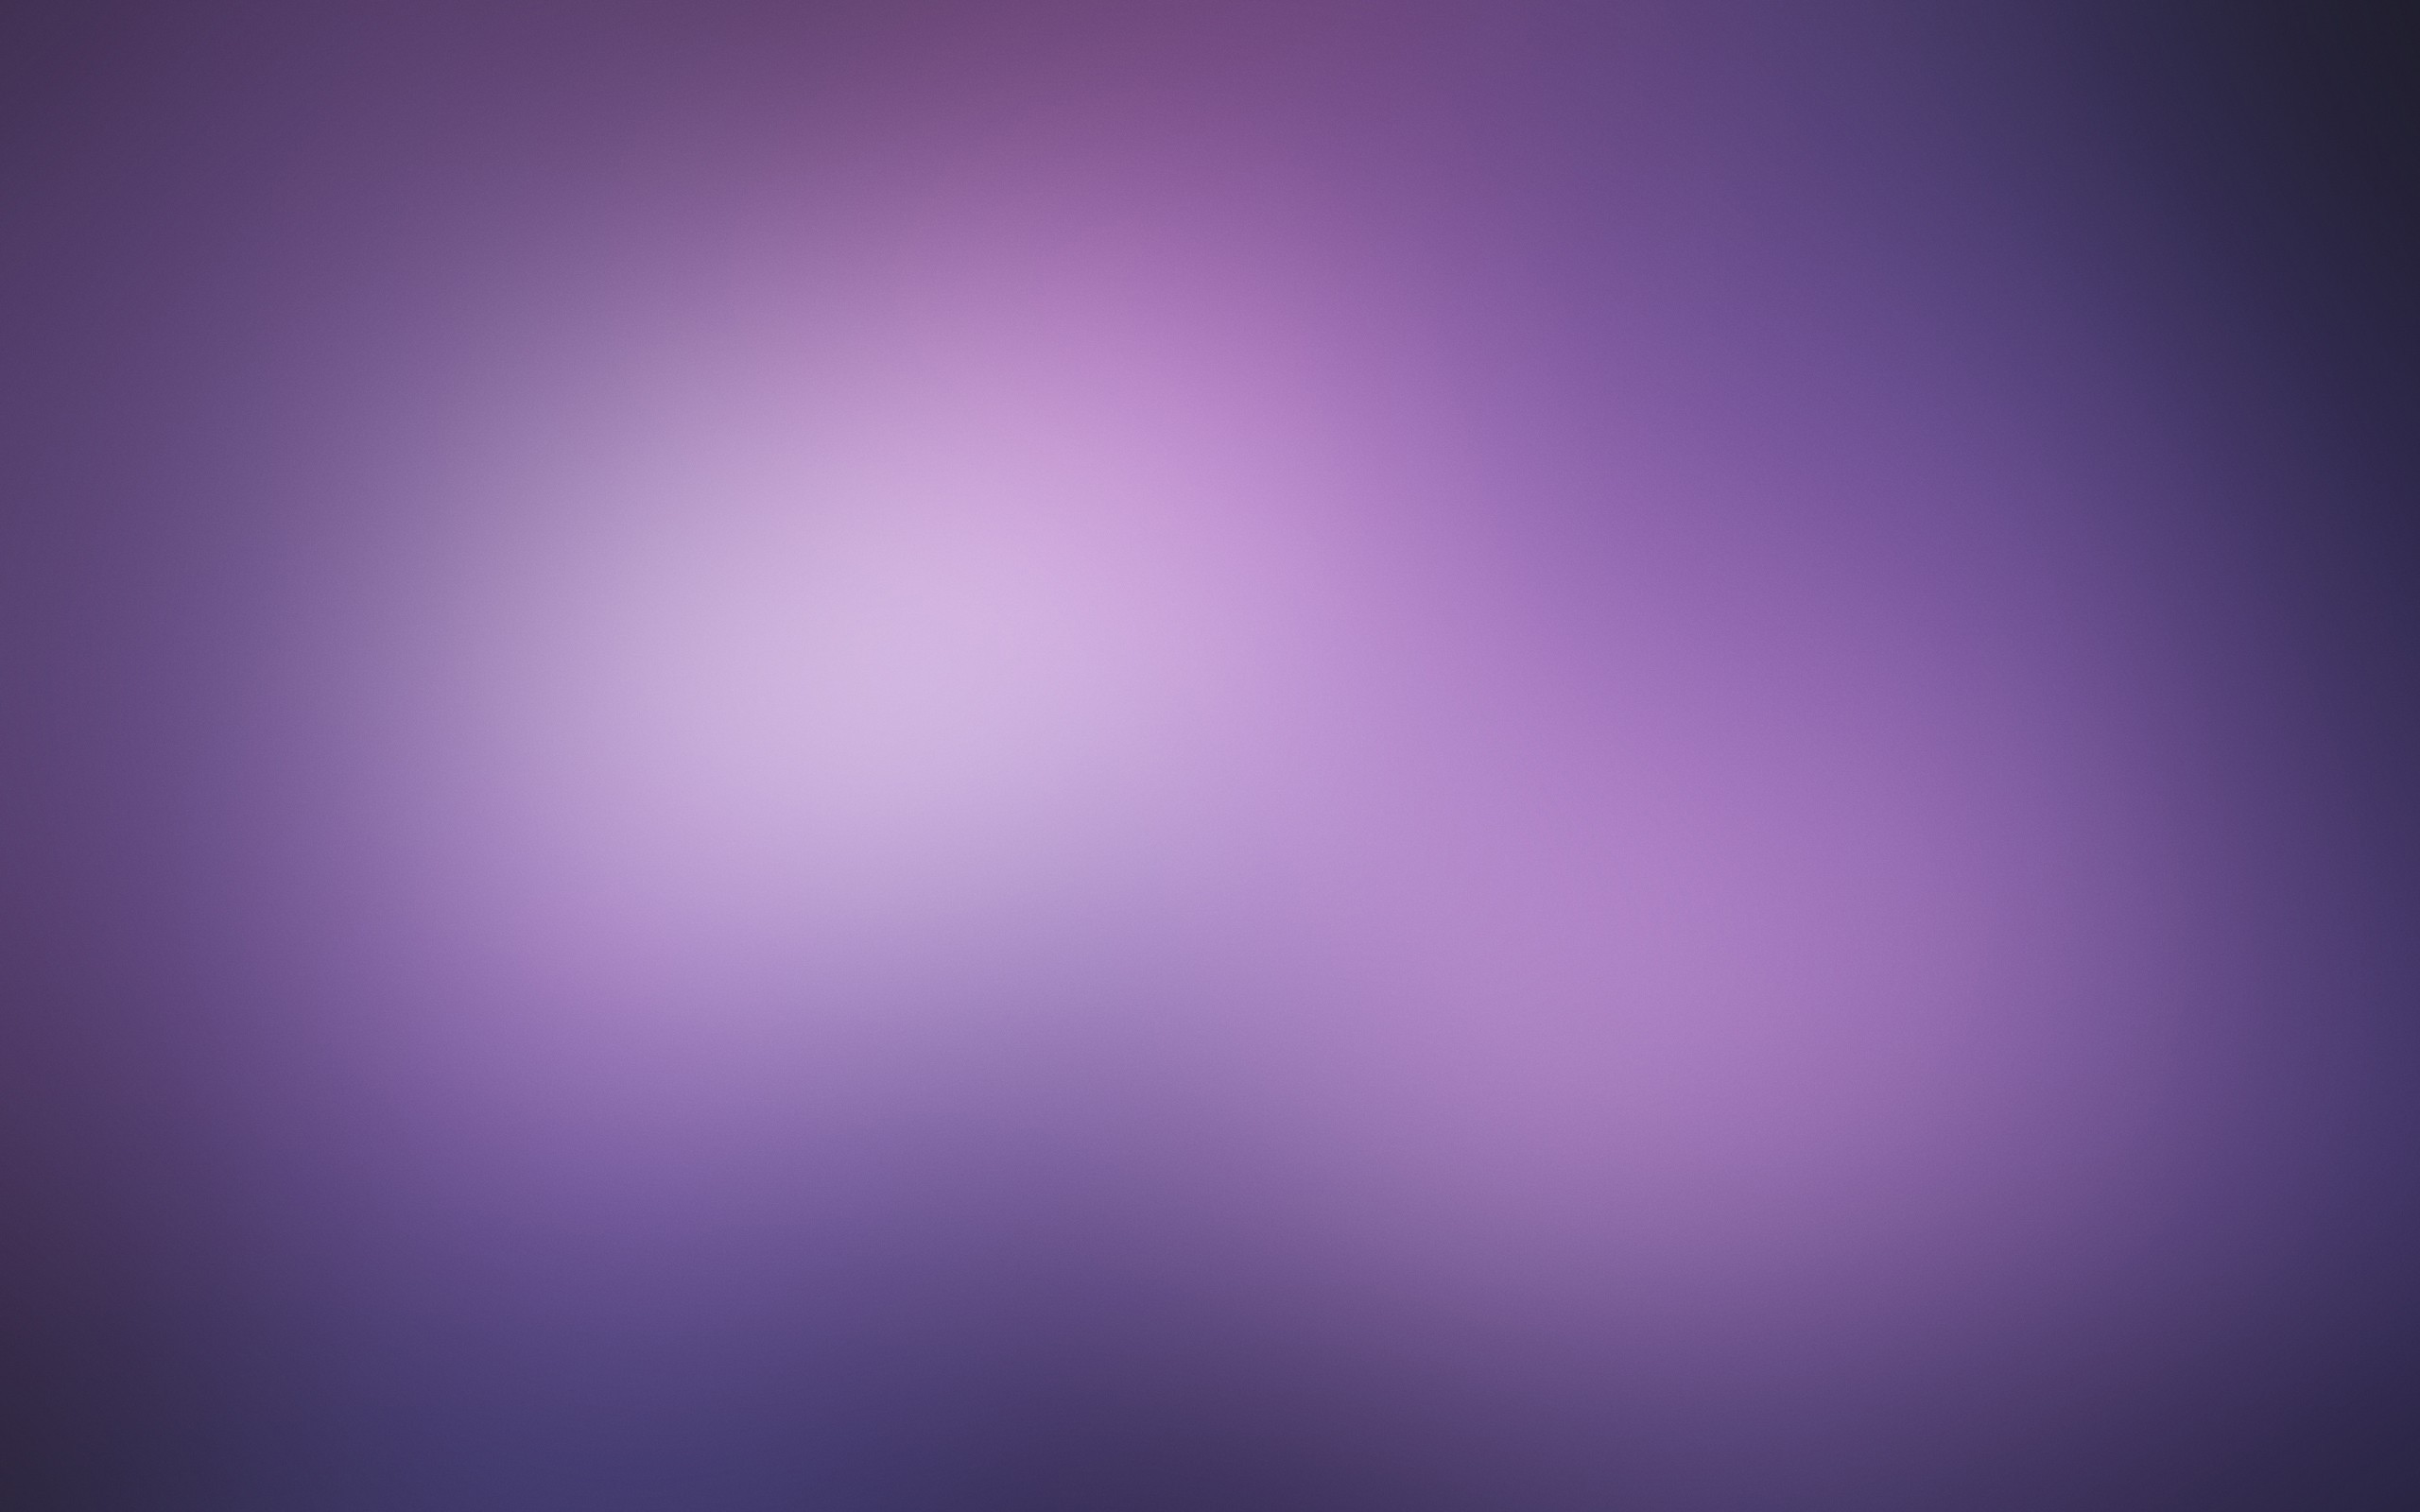 15 Excellent HD Gradient Wallpapers - HDWallSource com